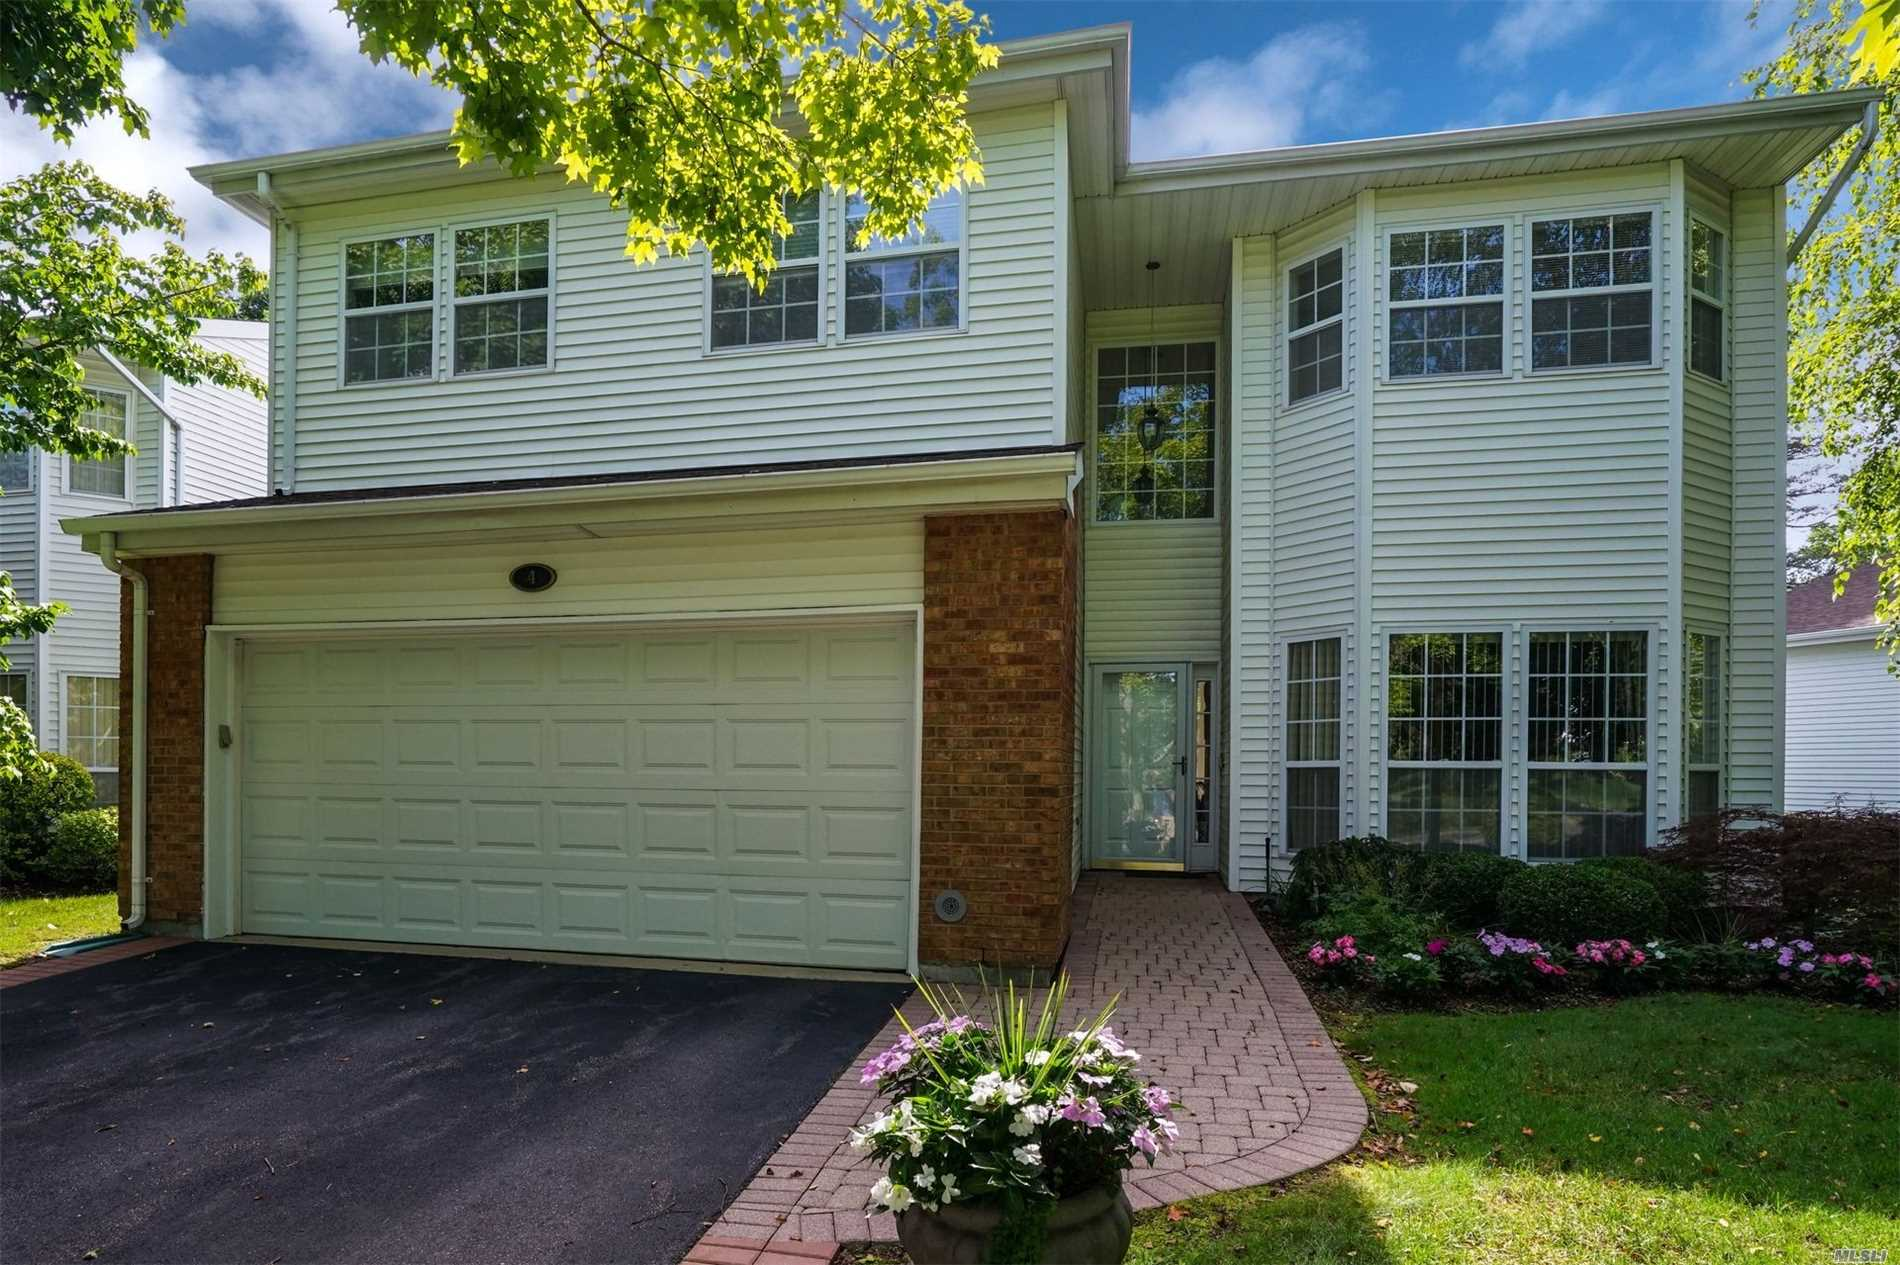 Property for sale at 4 Hamlet Dr, Commack,  NY 11725